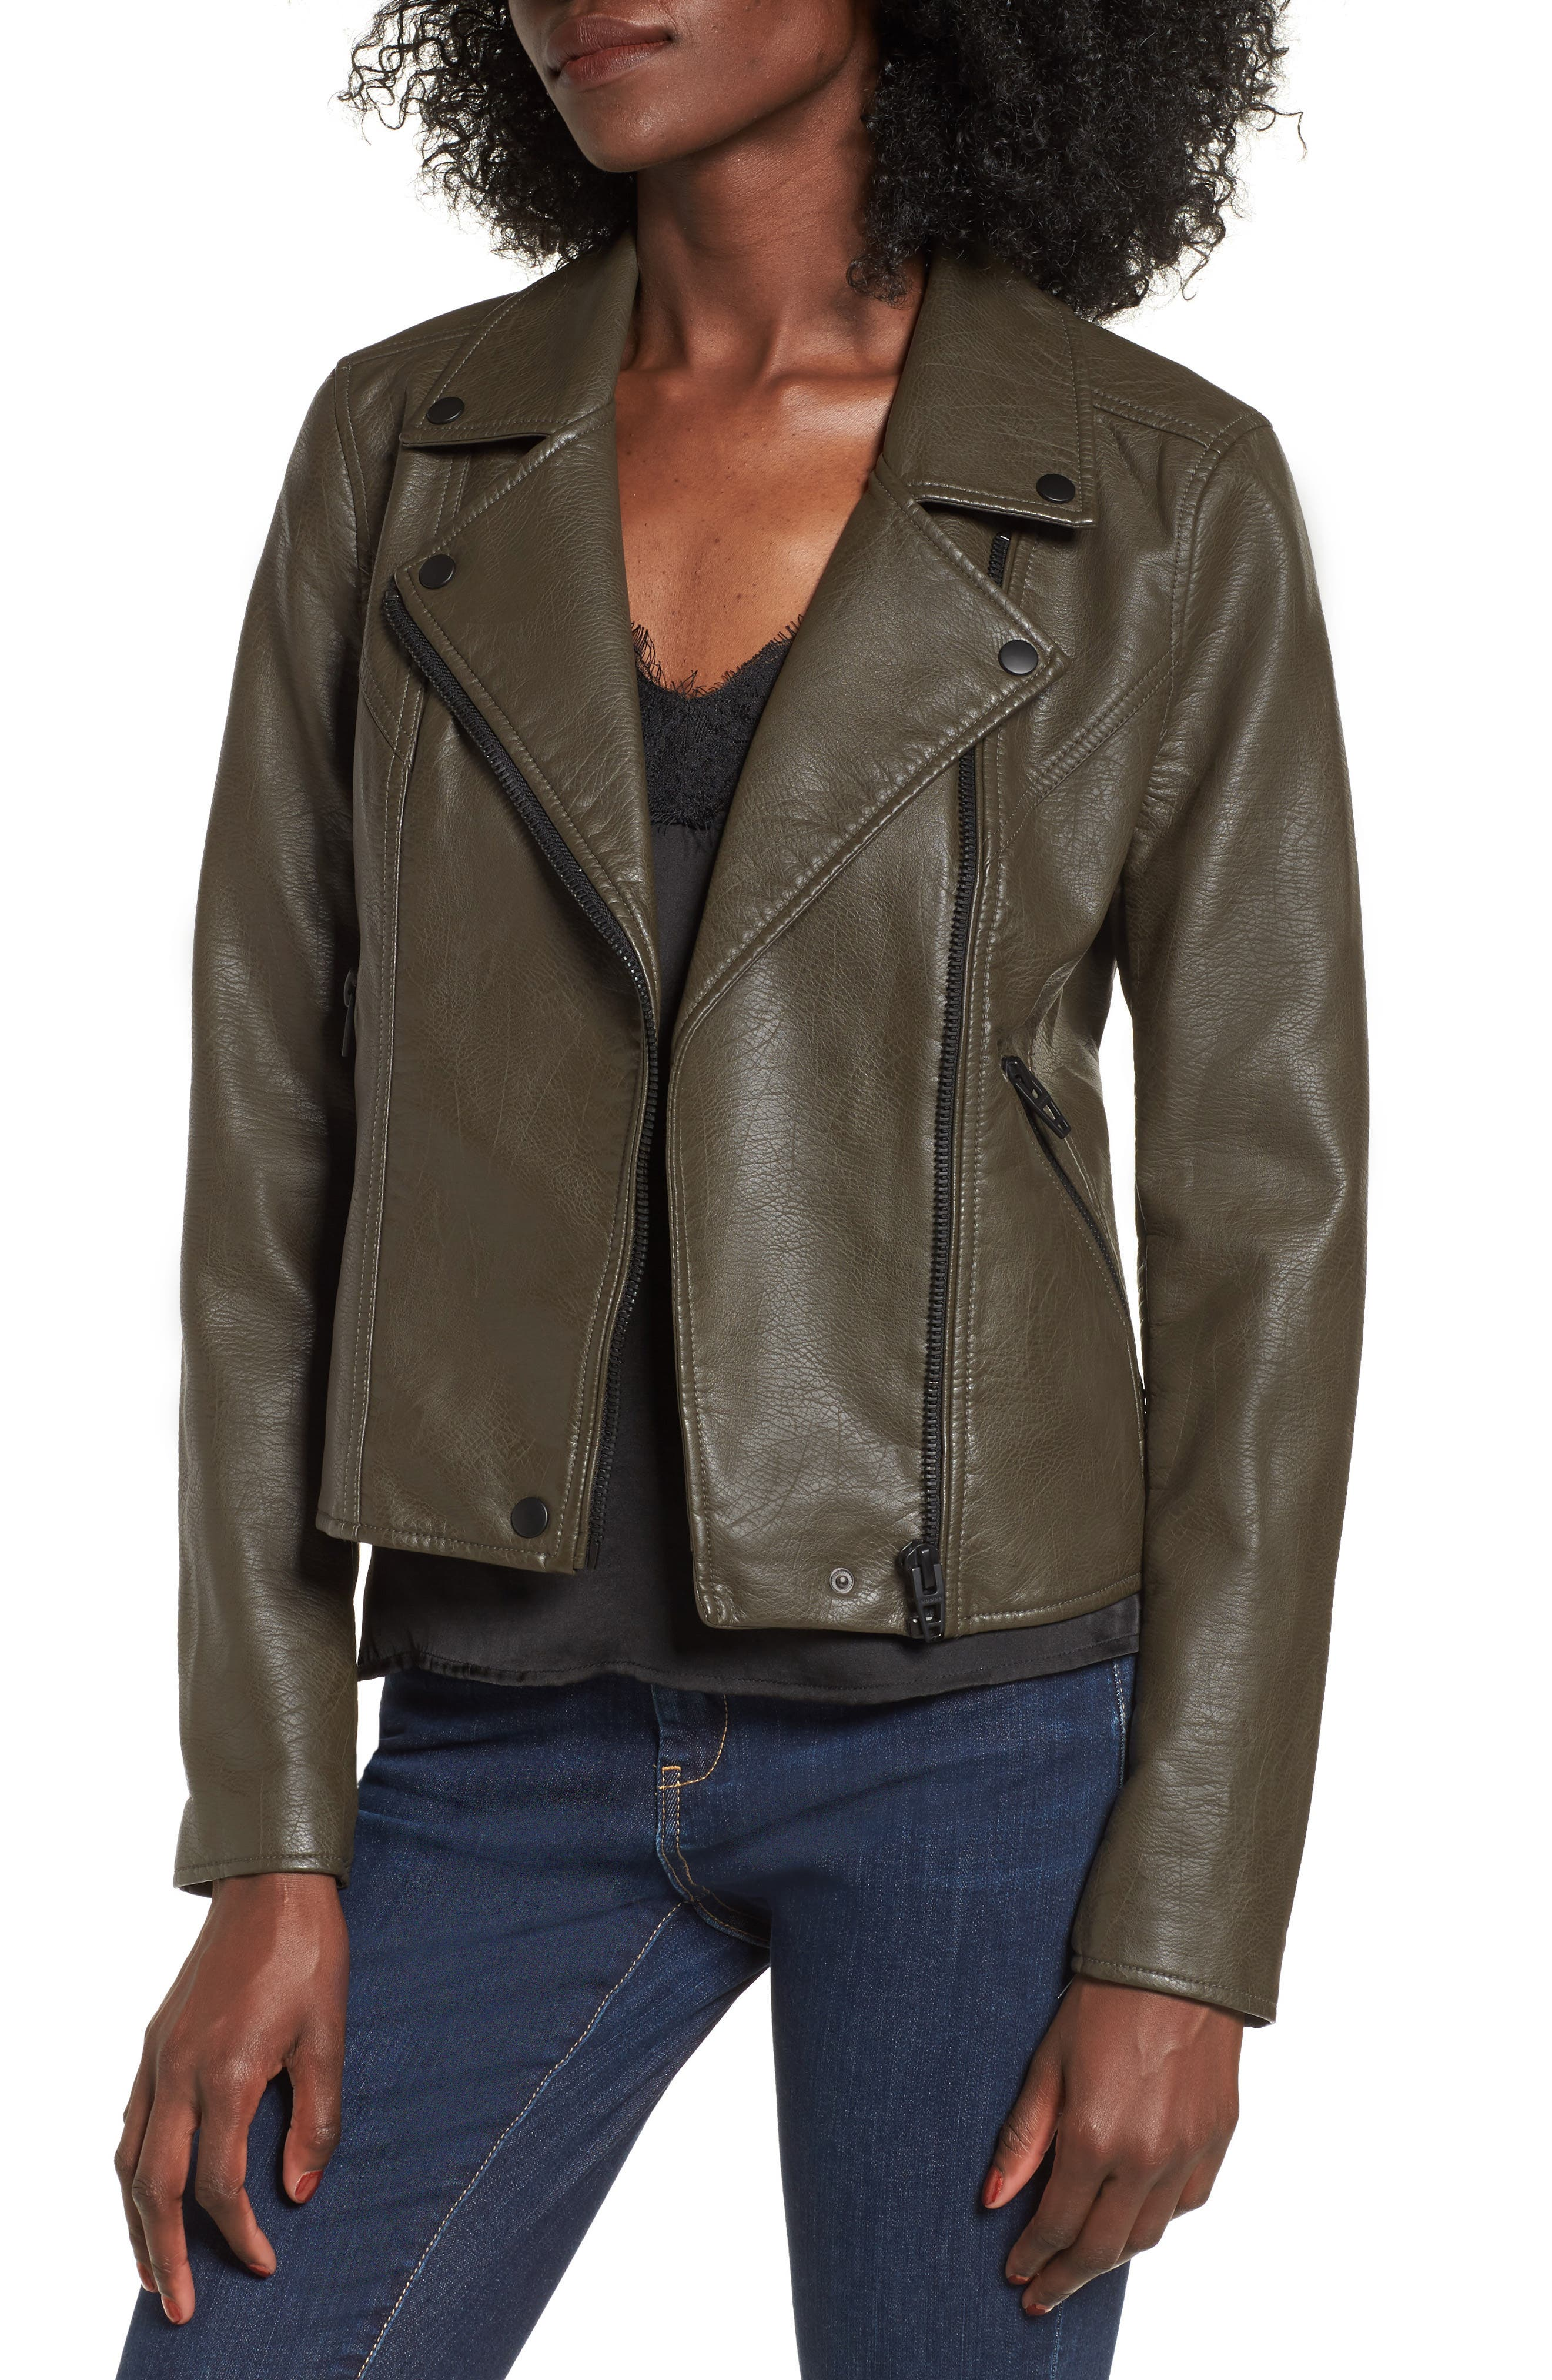 Image result for leather jackets